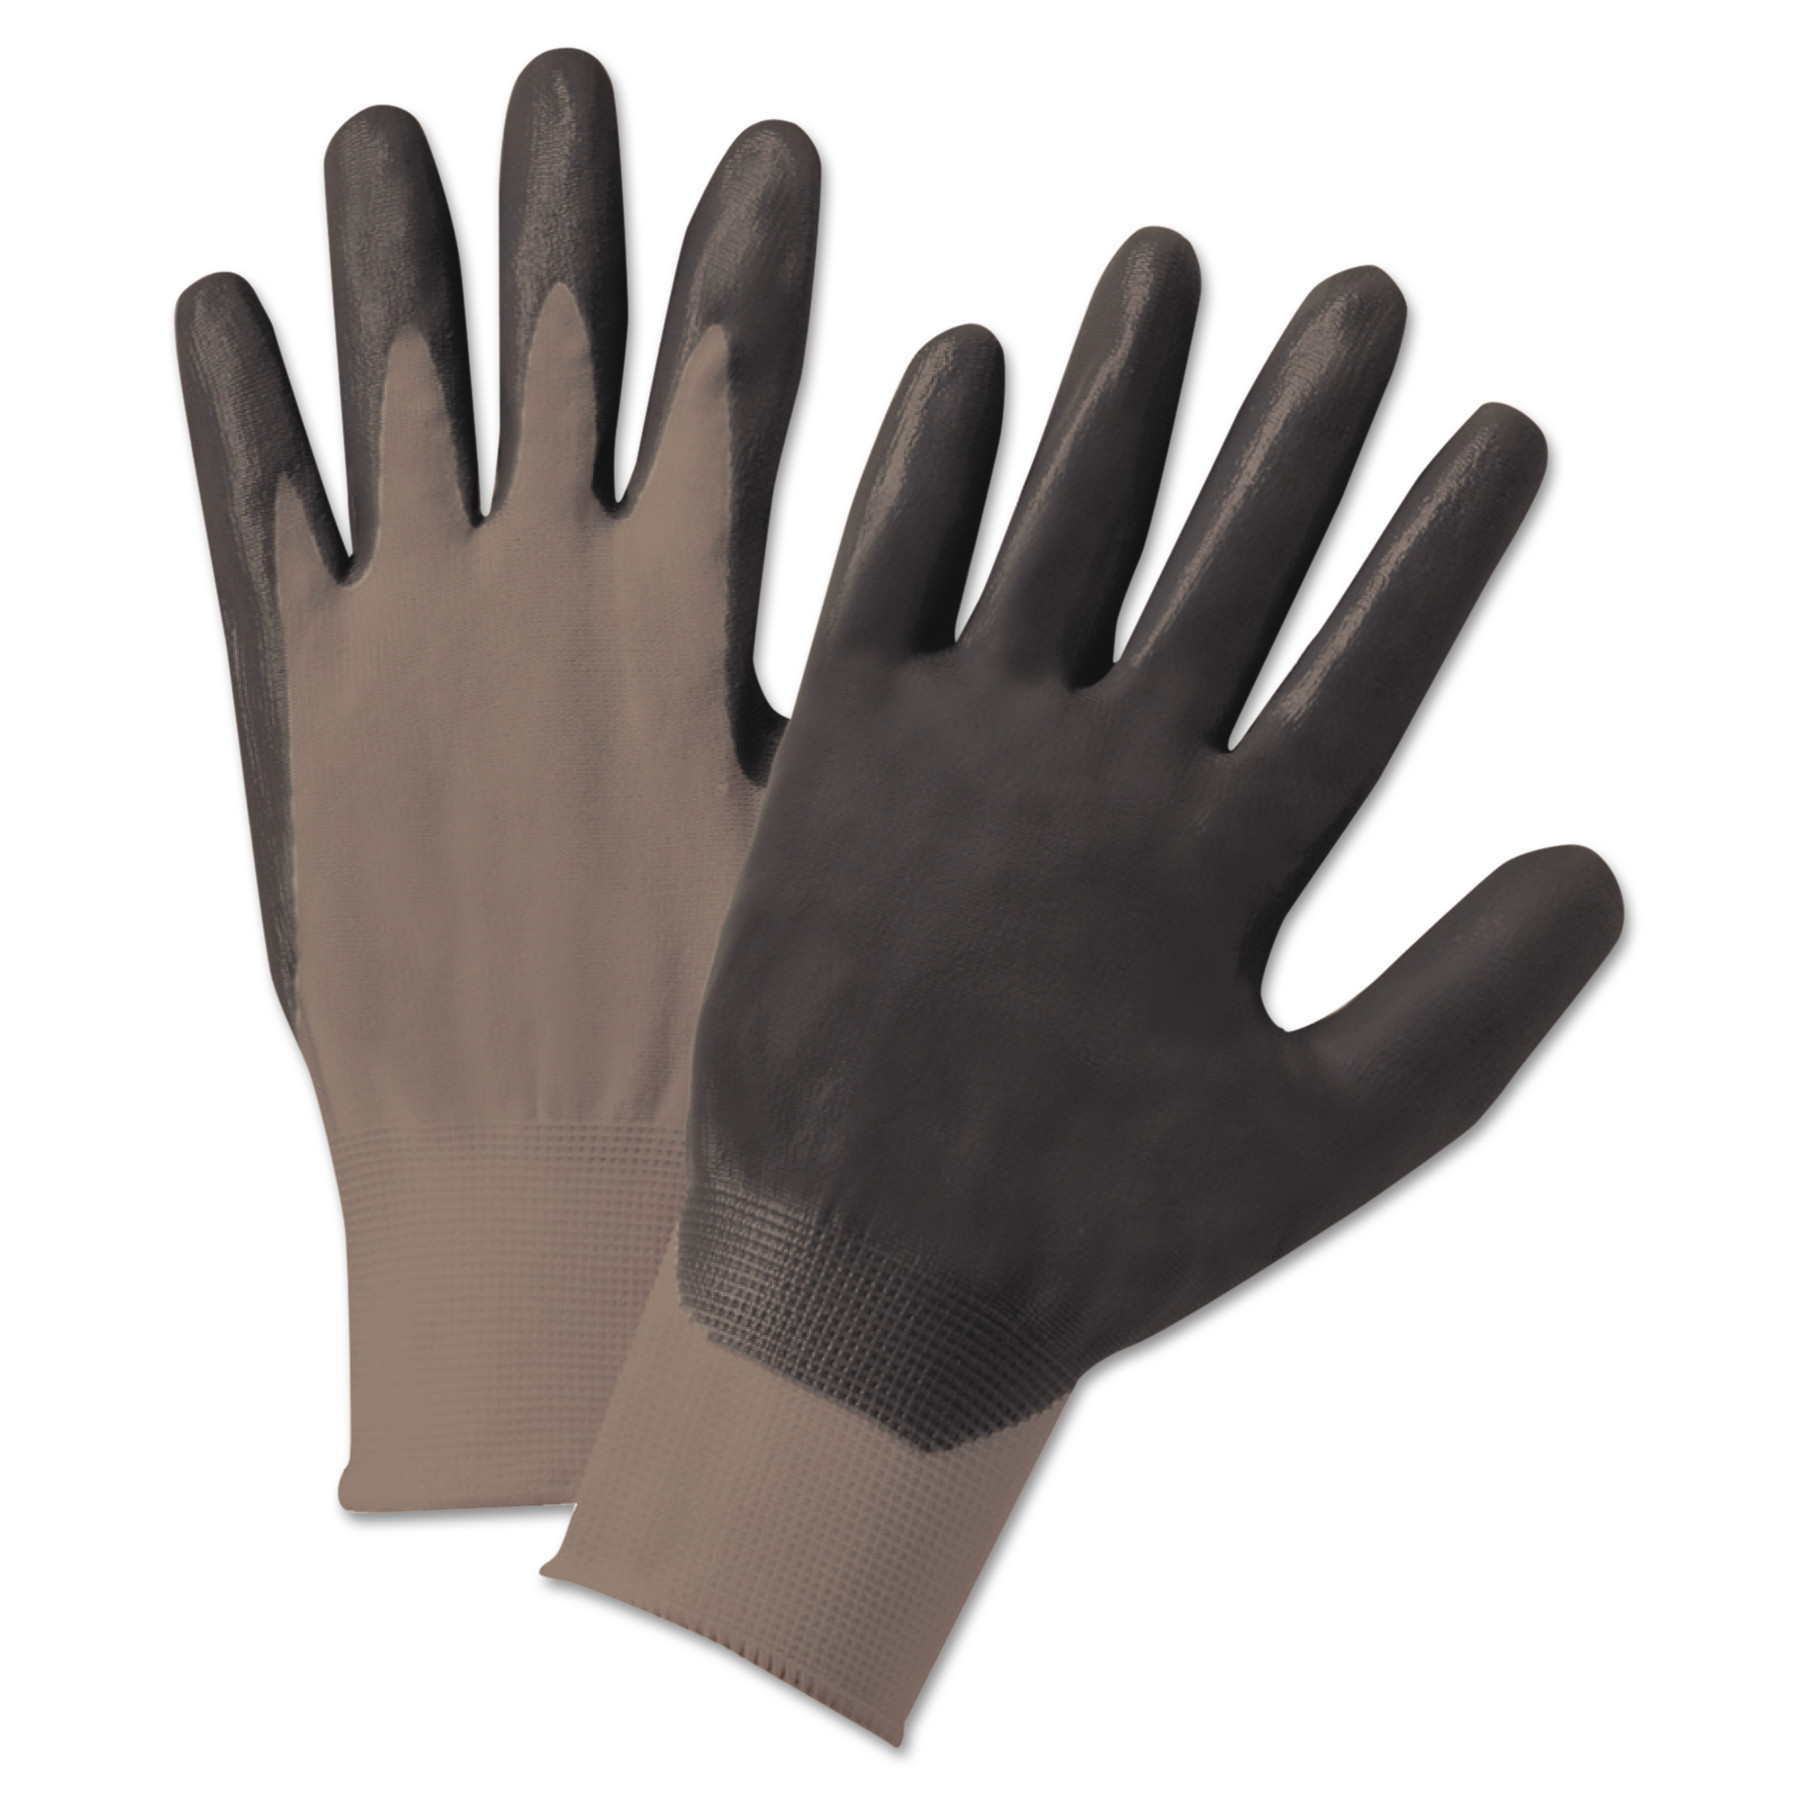 Anchor Brand Nitrile Coated Gloves, Dark Gray, Nylon Knit, X-Large, 12 Pairs